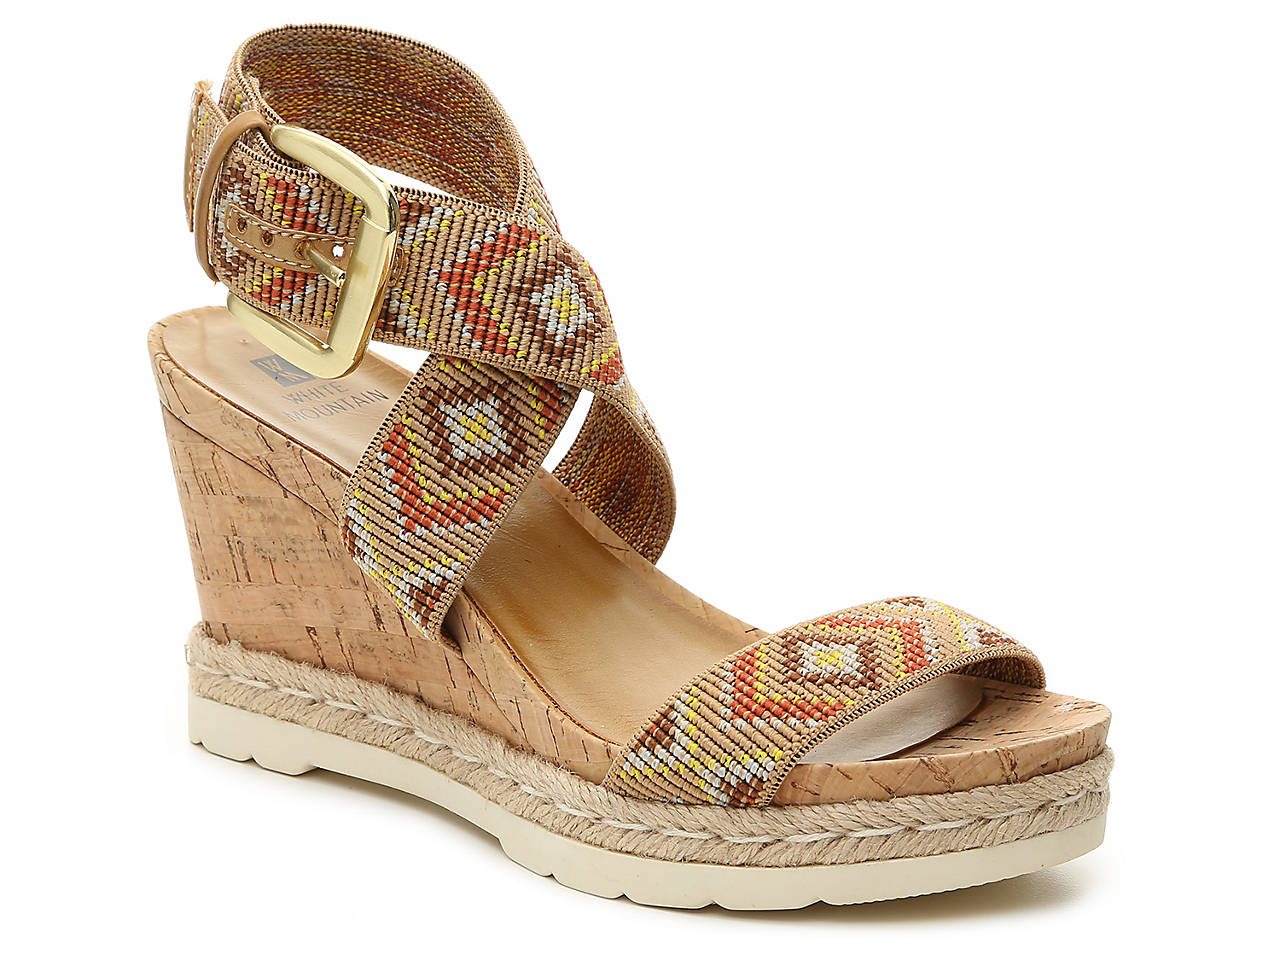 White Mountain Pearle Wedge Sandal (Women's)